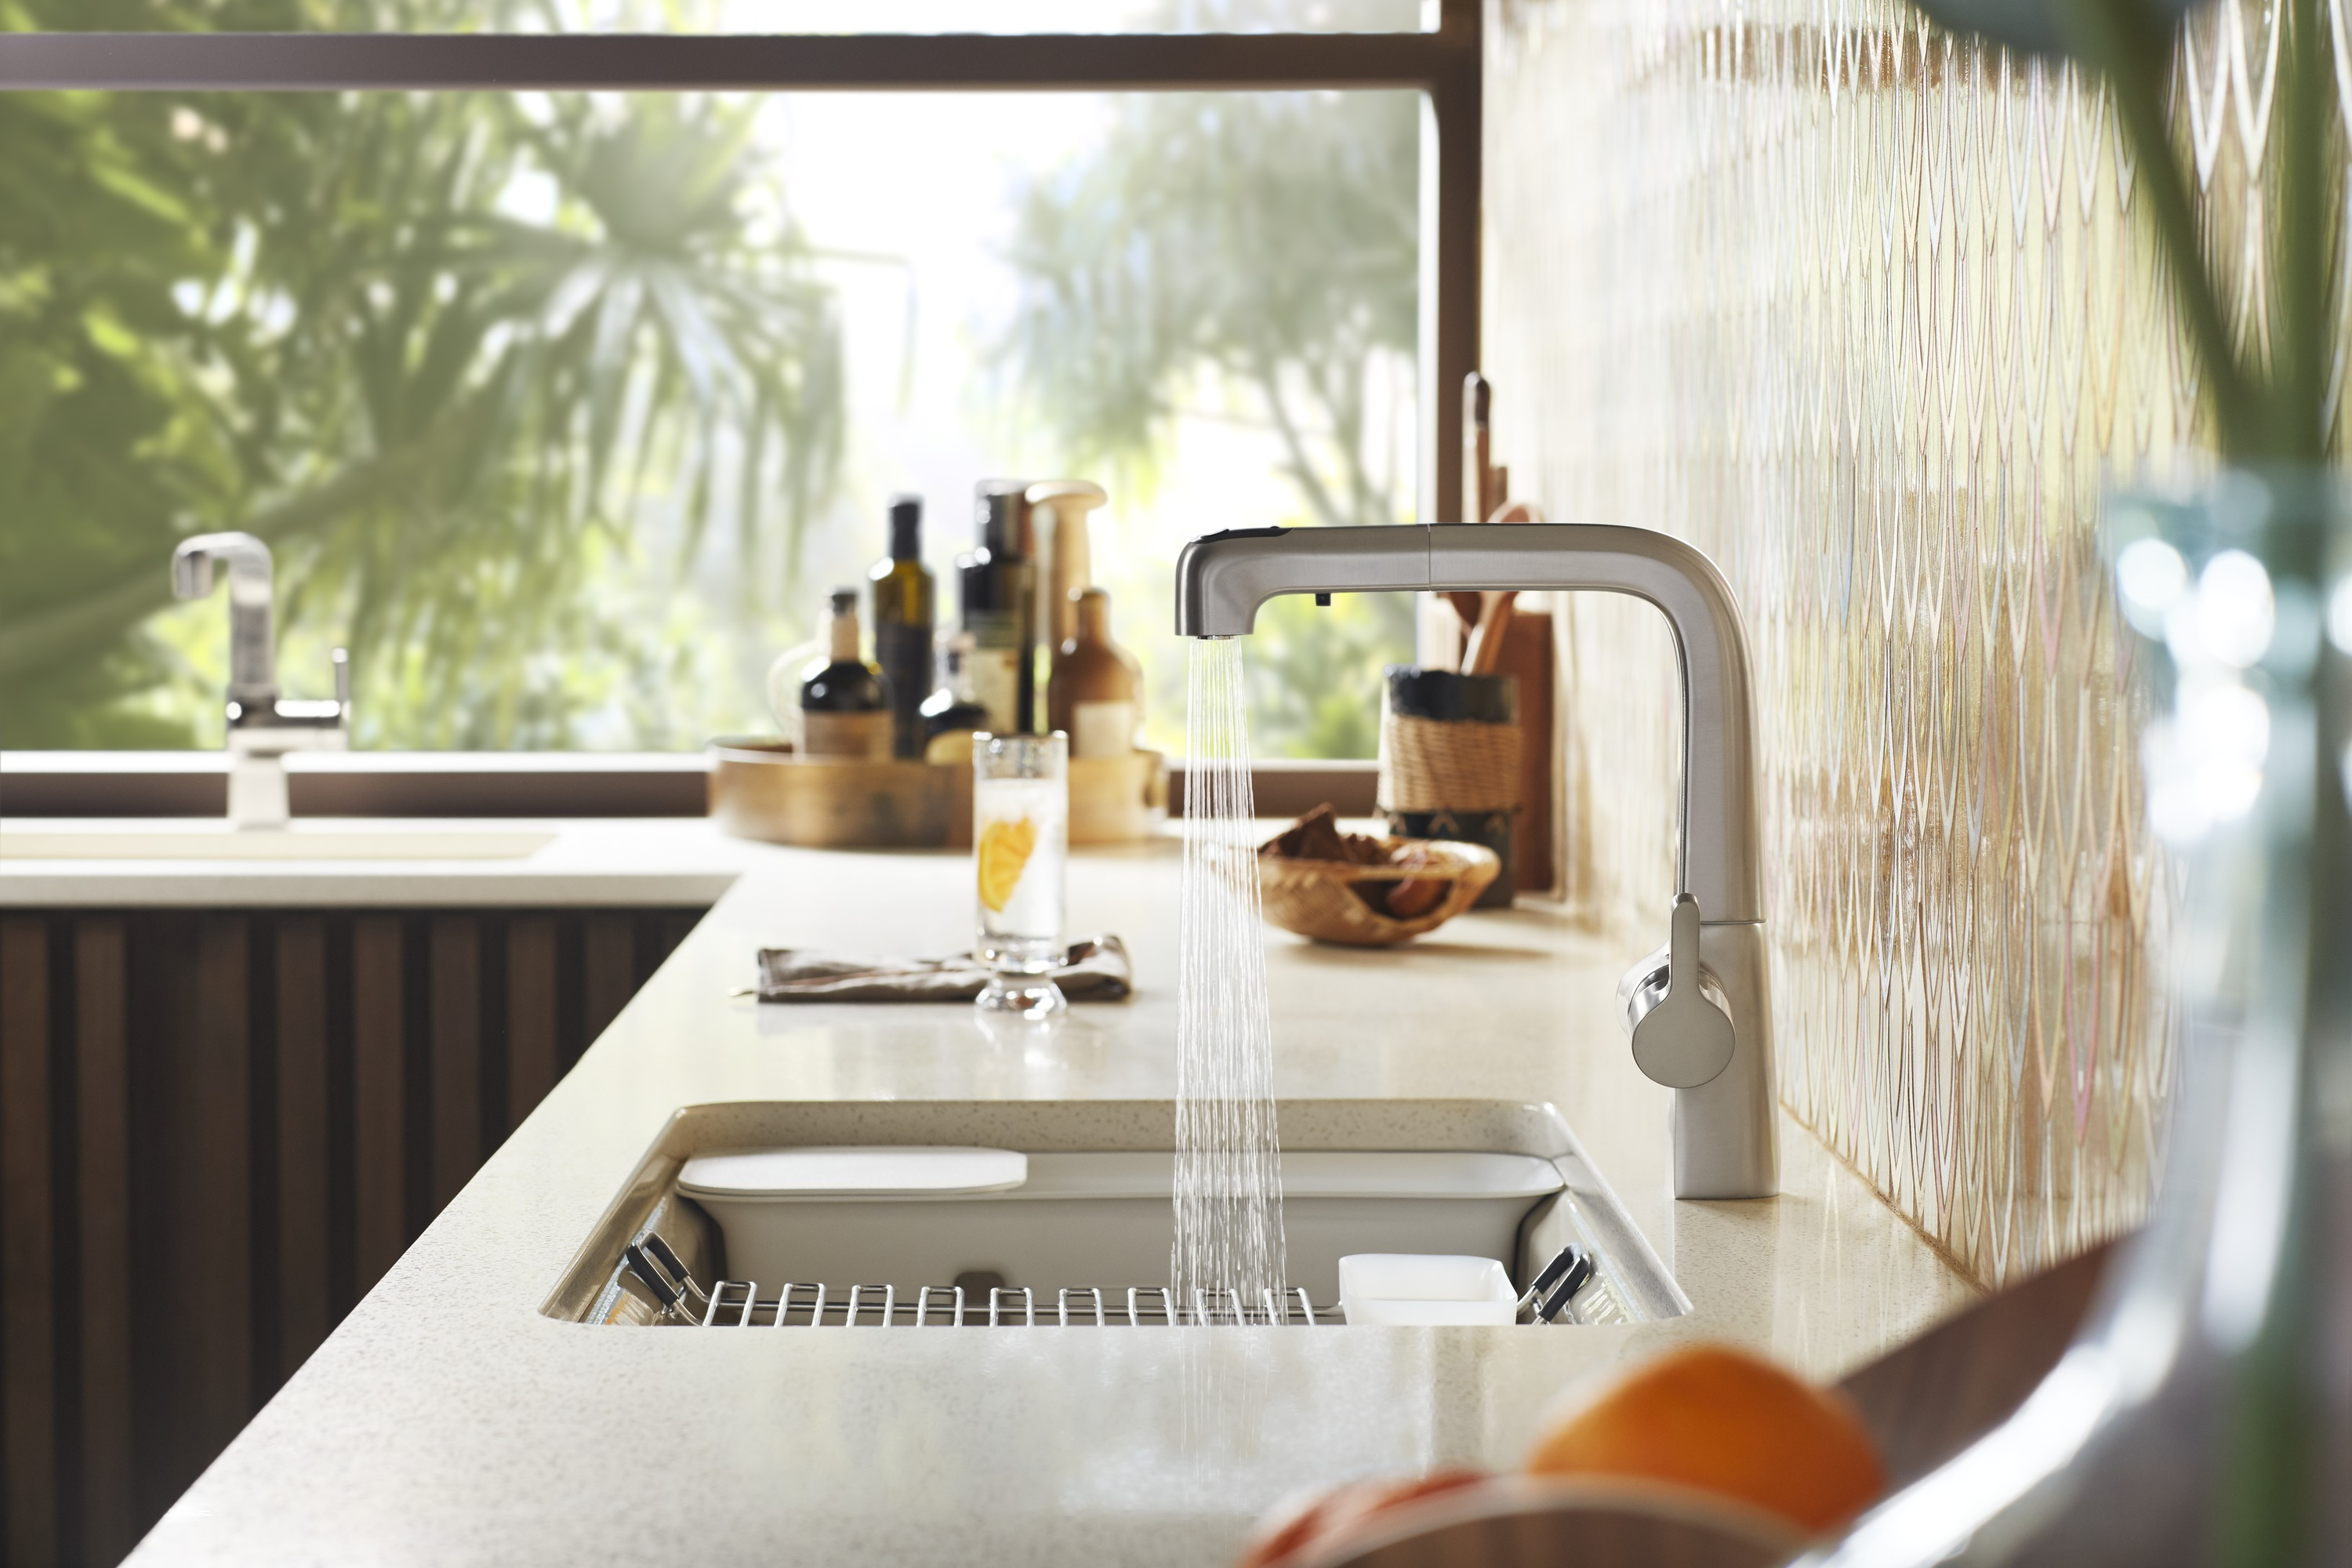 Evoke® pullout faucet     Riverby® under-mount sink     A splash of cool, the faucet's Vibrant® Stainless finish stands out against the heat of the iridescent tile.